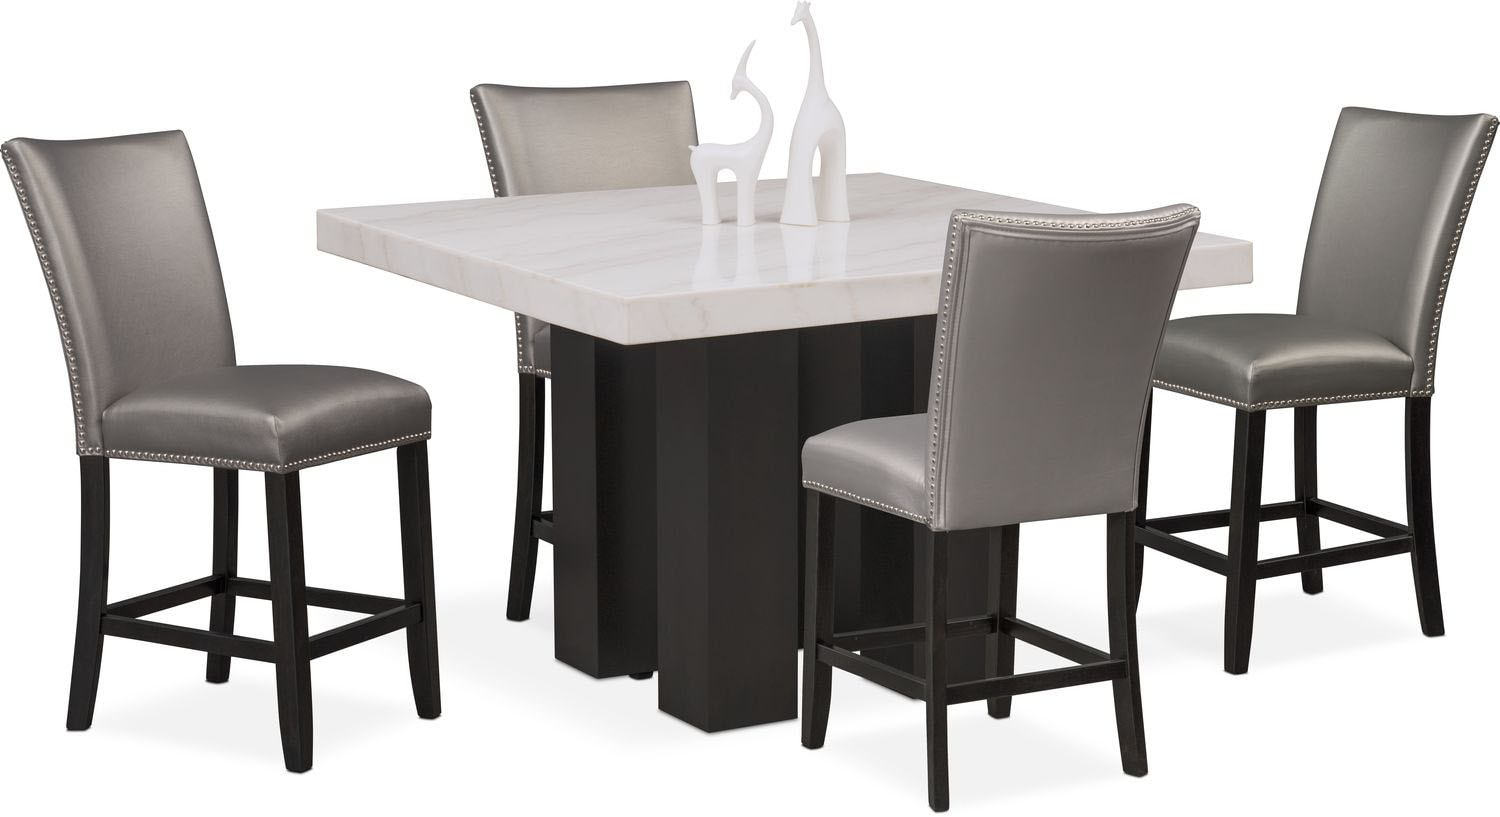 Dining Room Furniture - Artemis Counter-Height Marble Dining Table and 4 Upholstered Stools